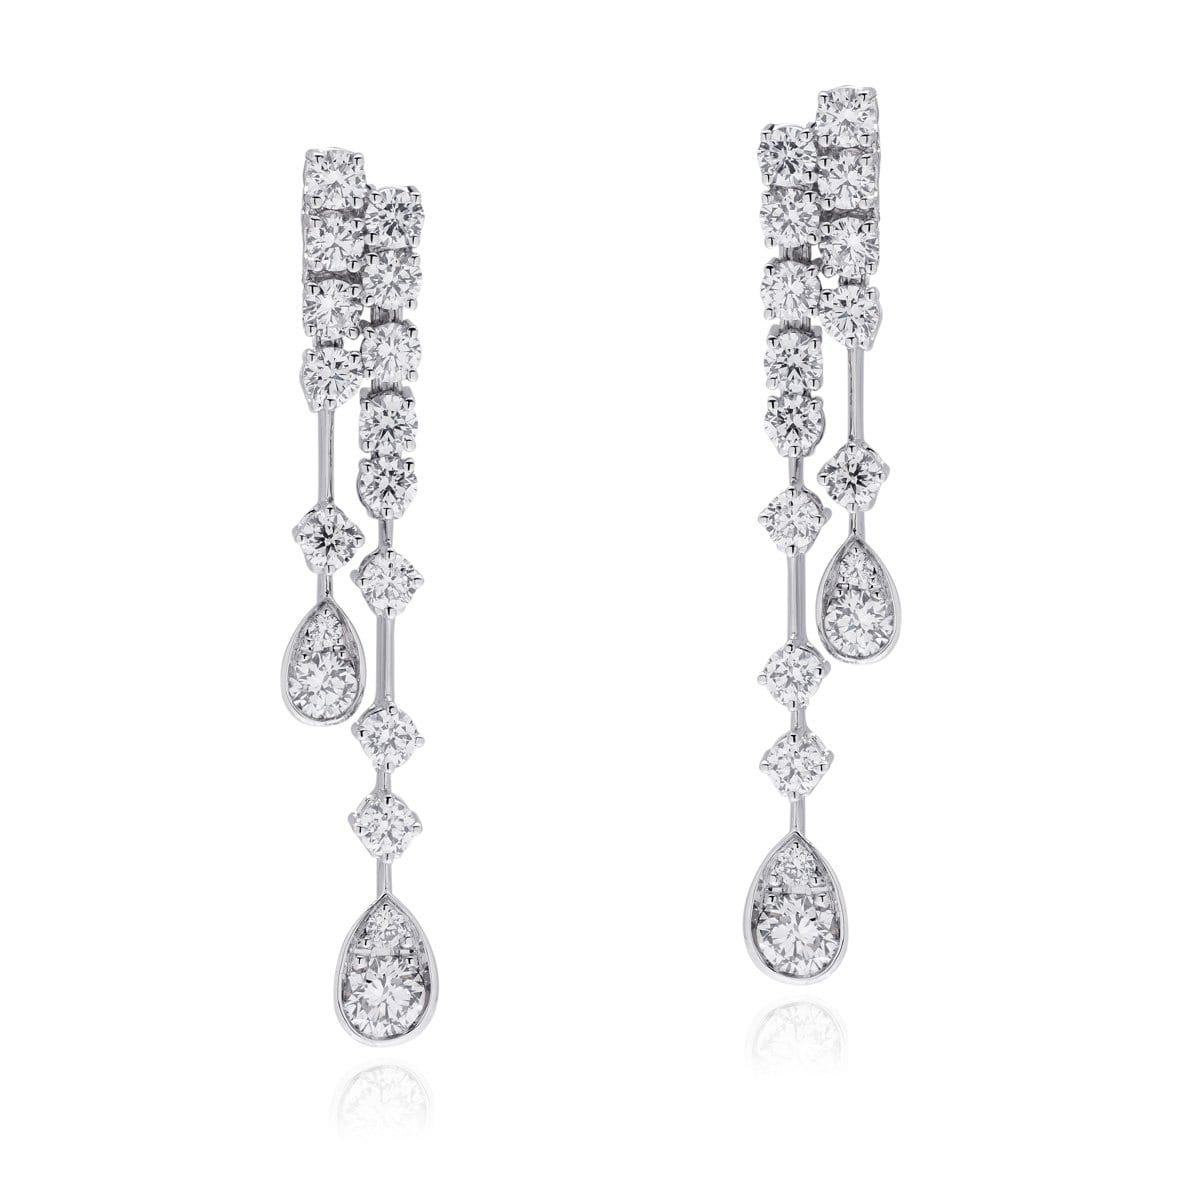 DIVINE Earrings - STENZHORN JEWELLERY